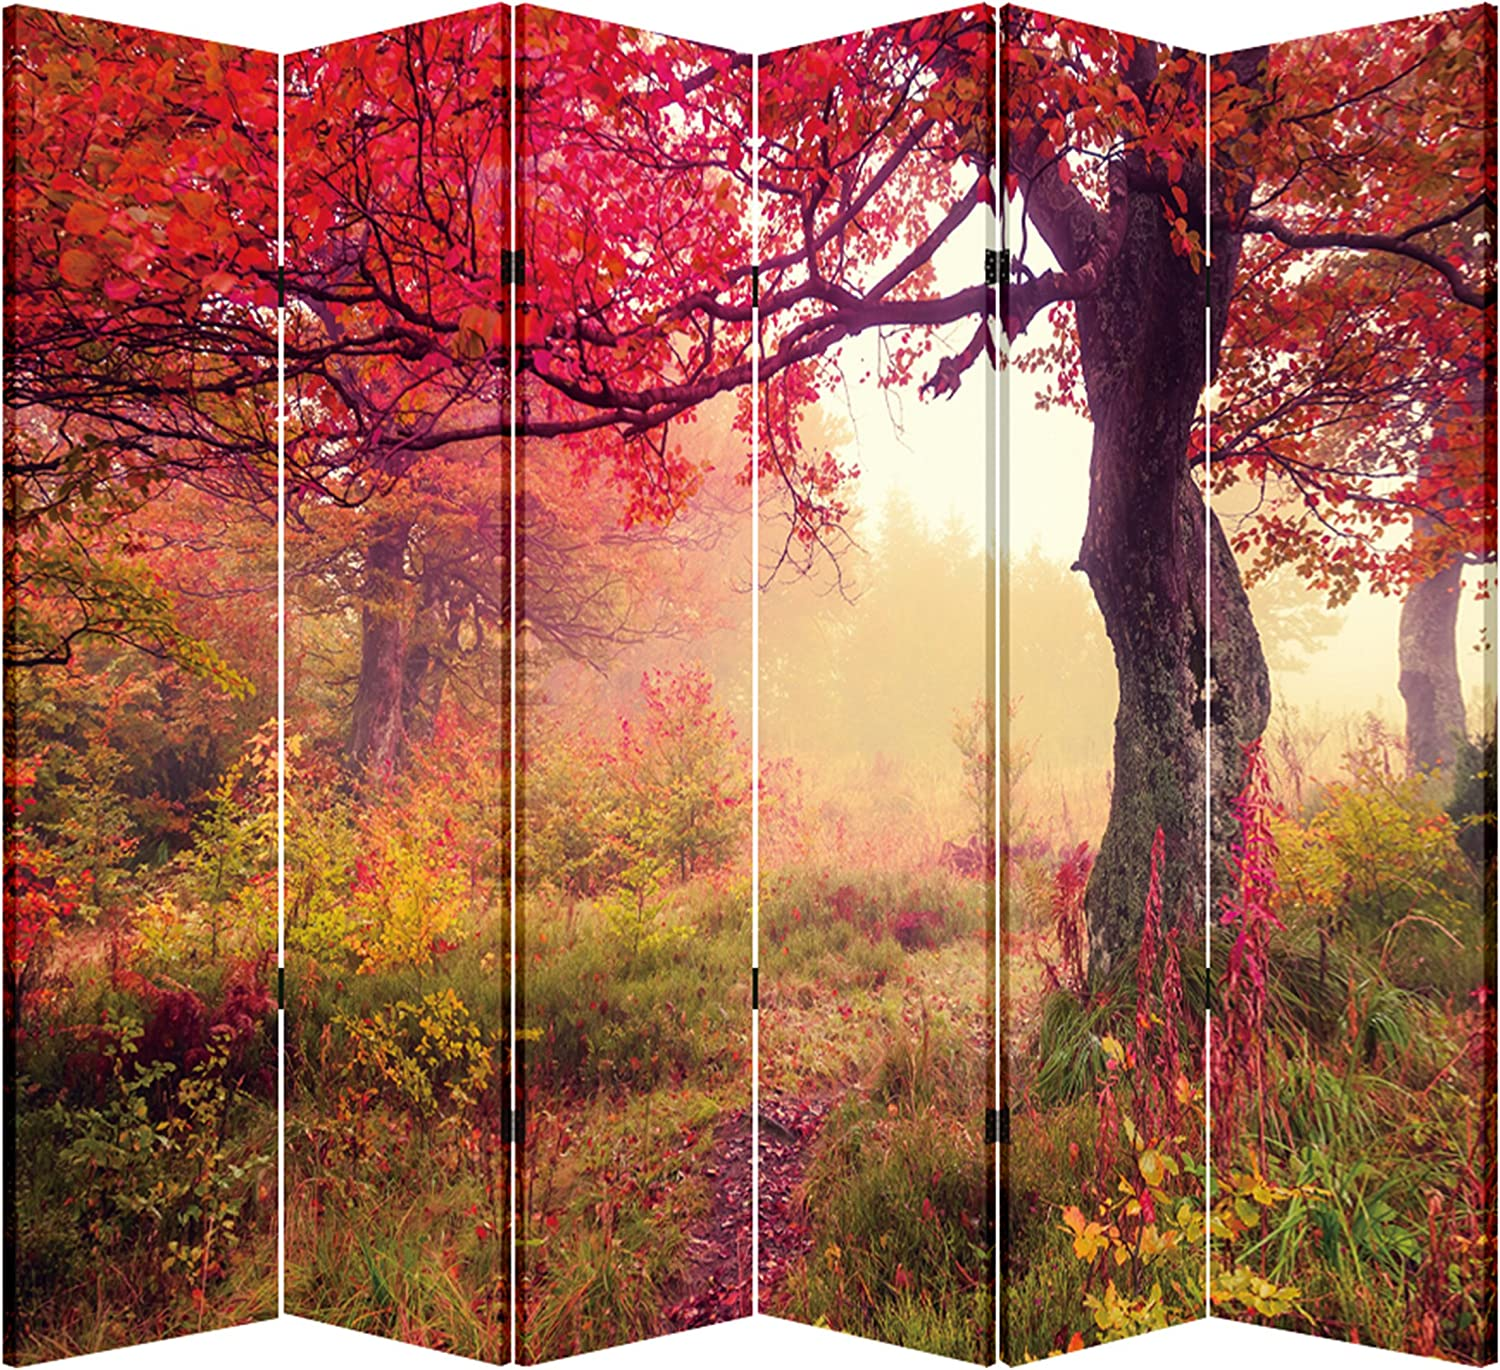 Toa 6 Panel Folding Screen Canvas Privacy Partition Divider Hidden Forest